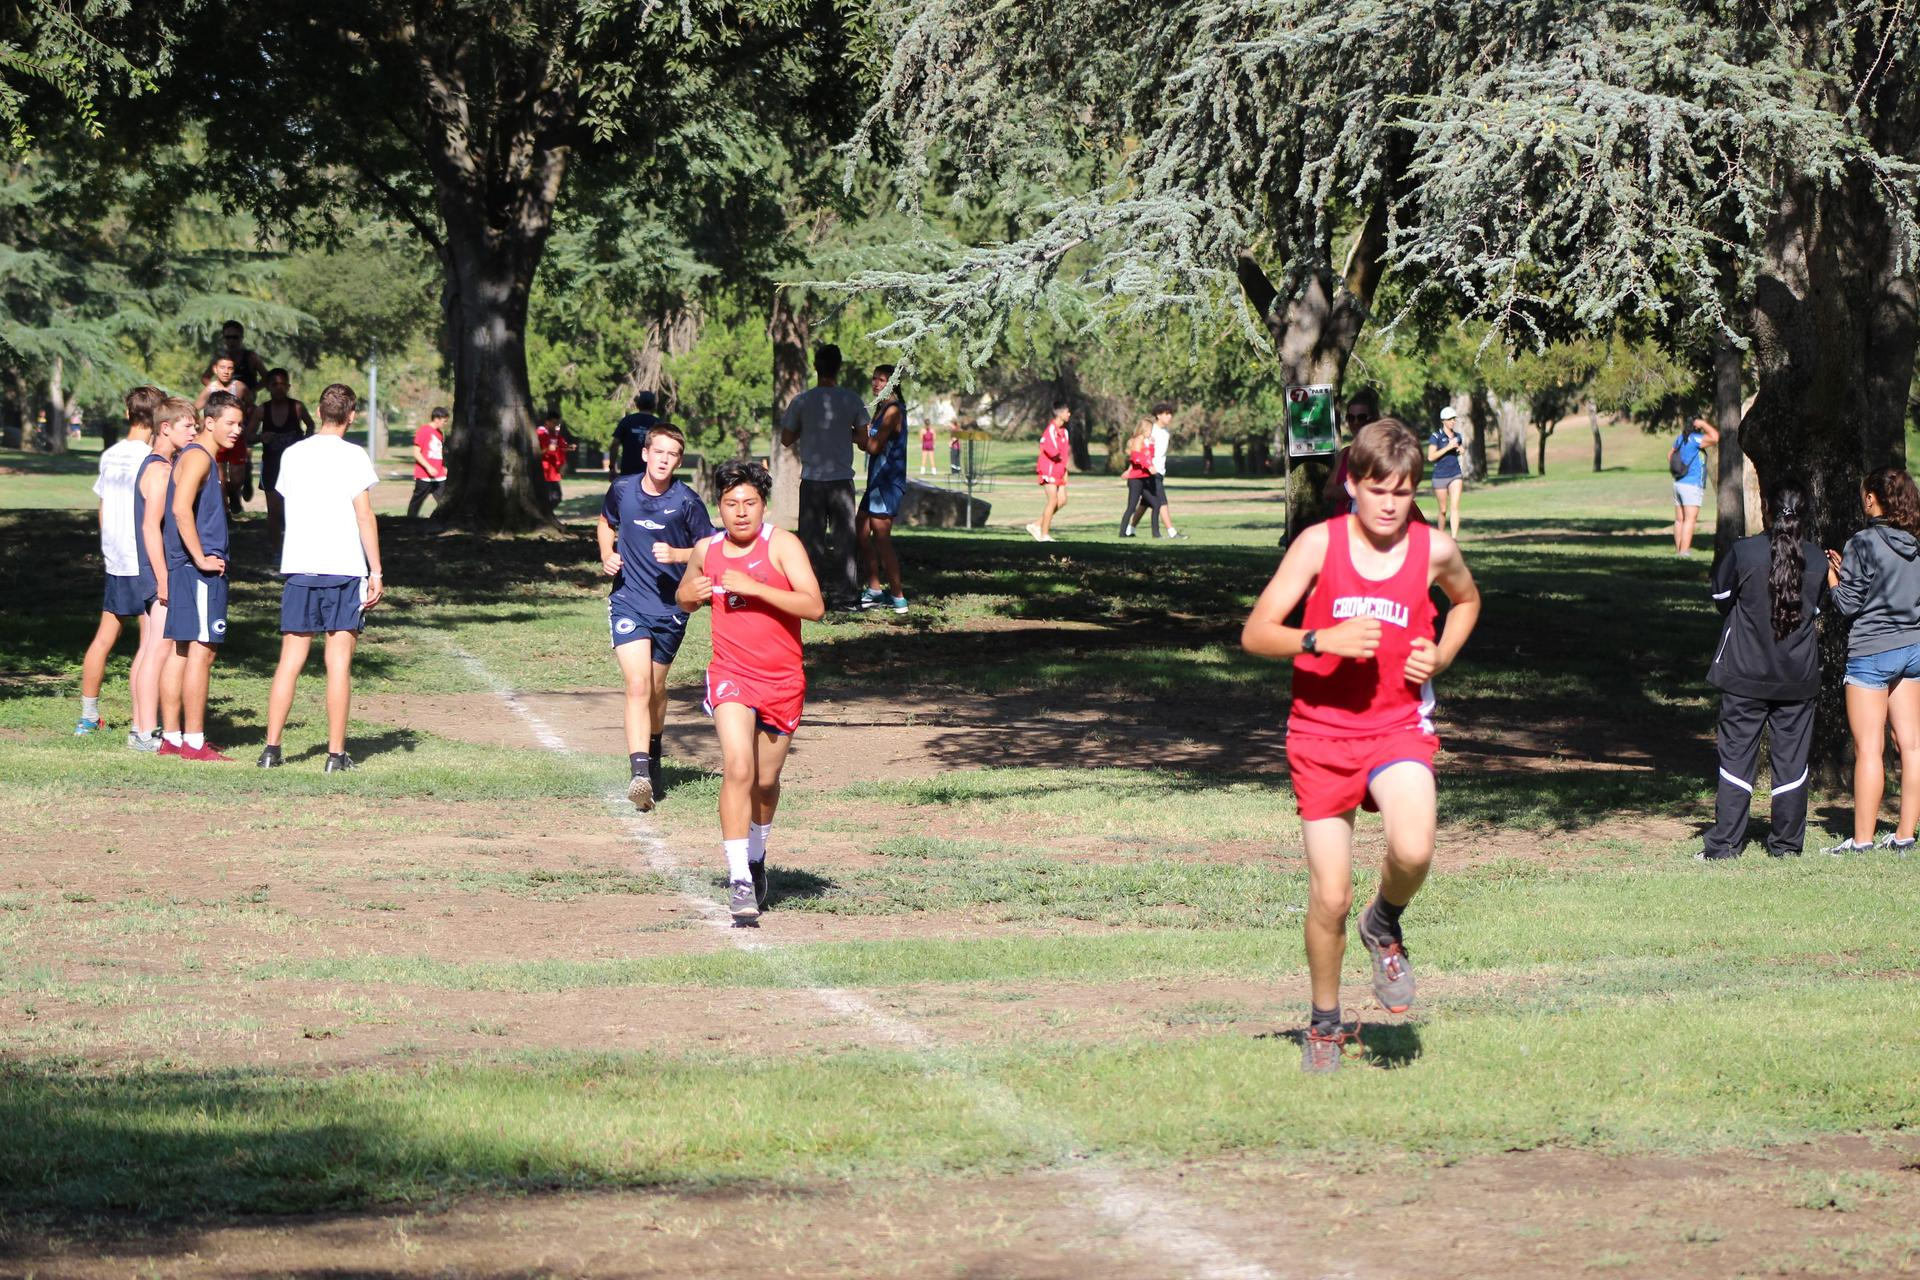 Athletes and fans at Cross Country meet in Madera